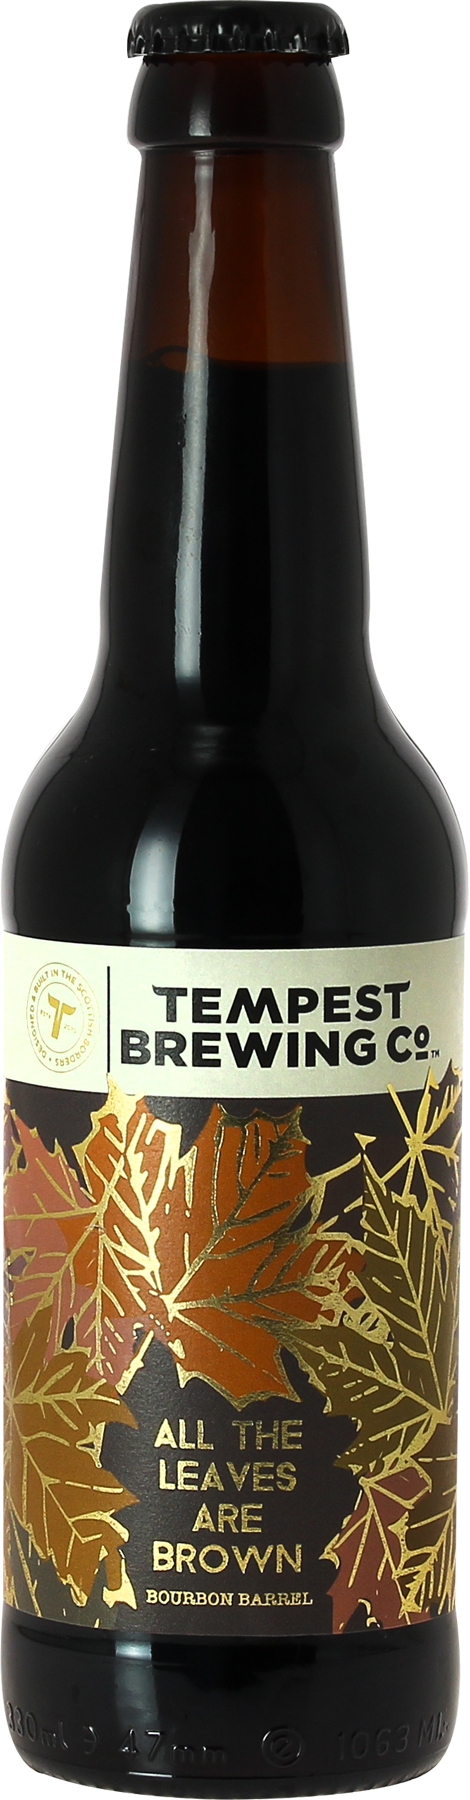 Tempest All the Leaves Are Brown - Bourbon Barrel